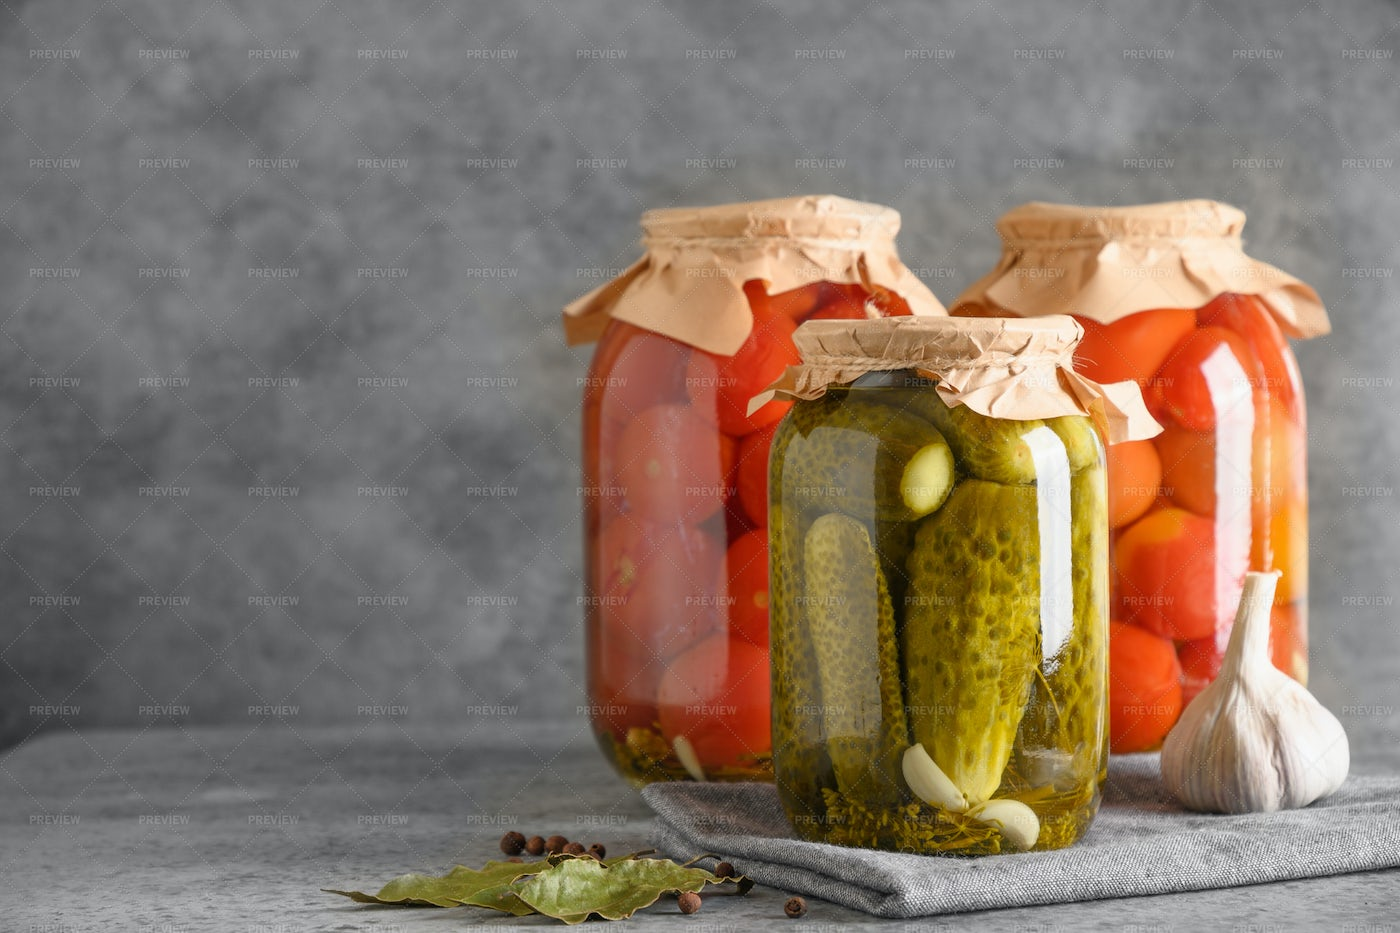 Homemade Pickled Tomatoes And Cucumbers: Stock Photos